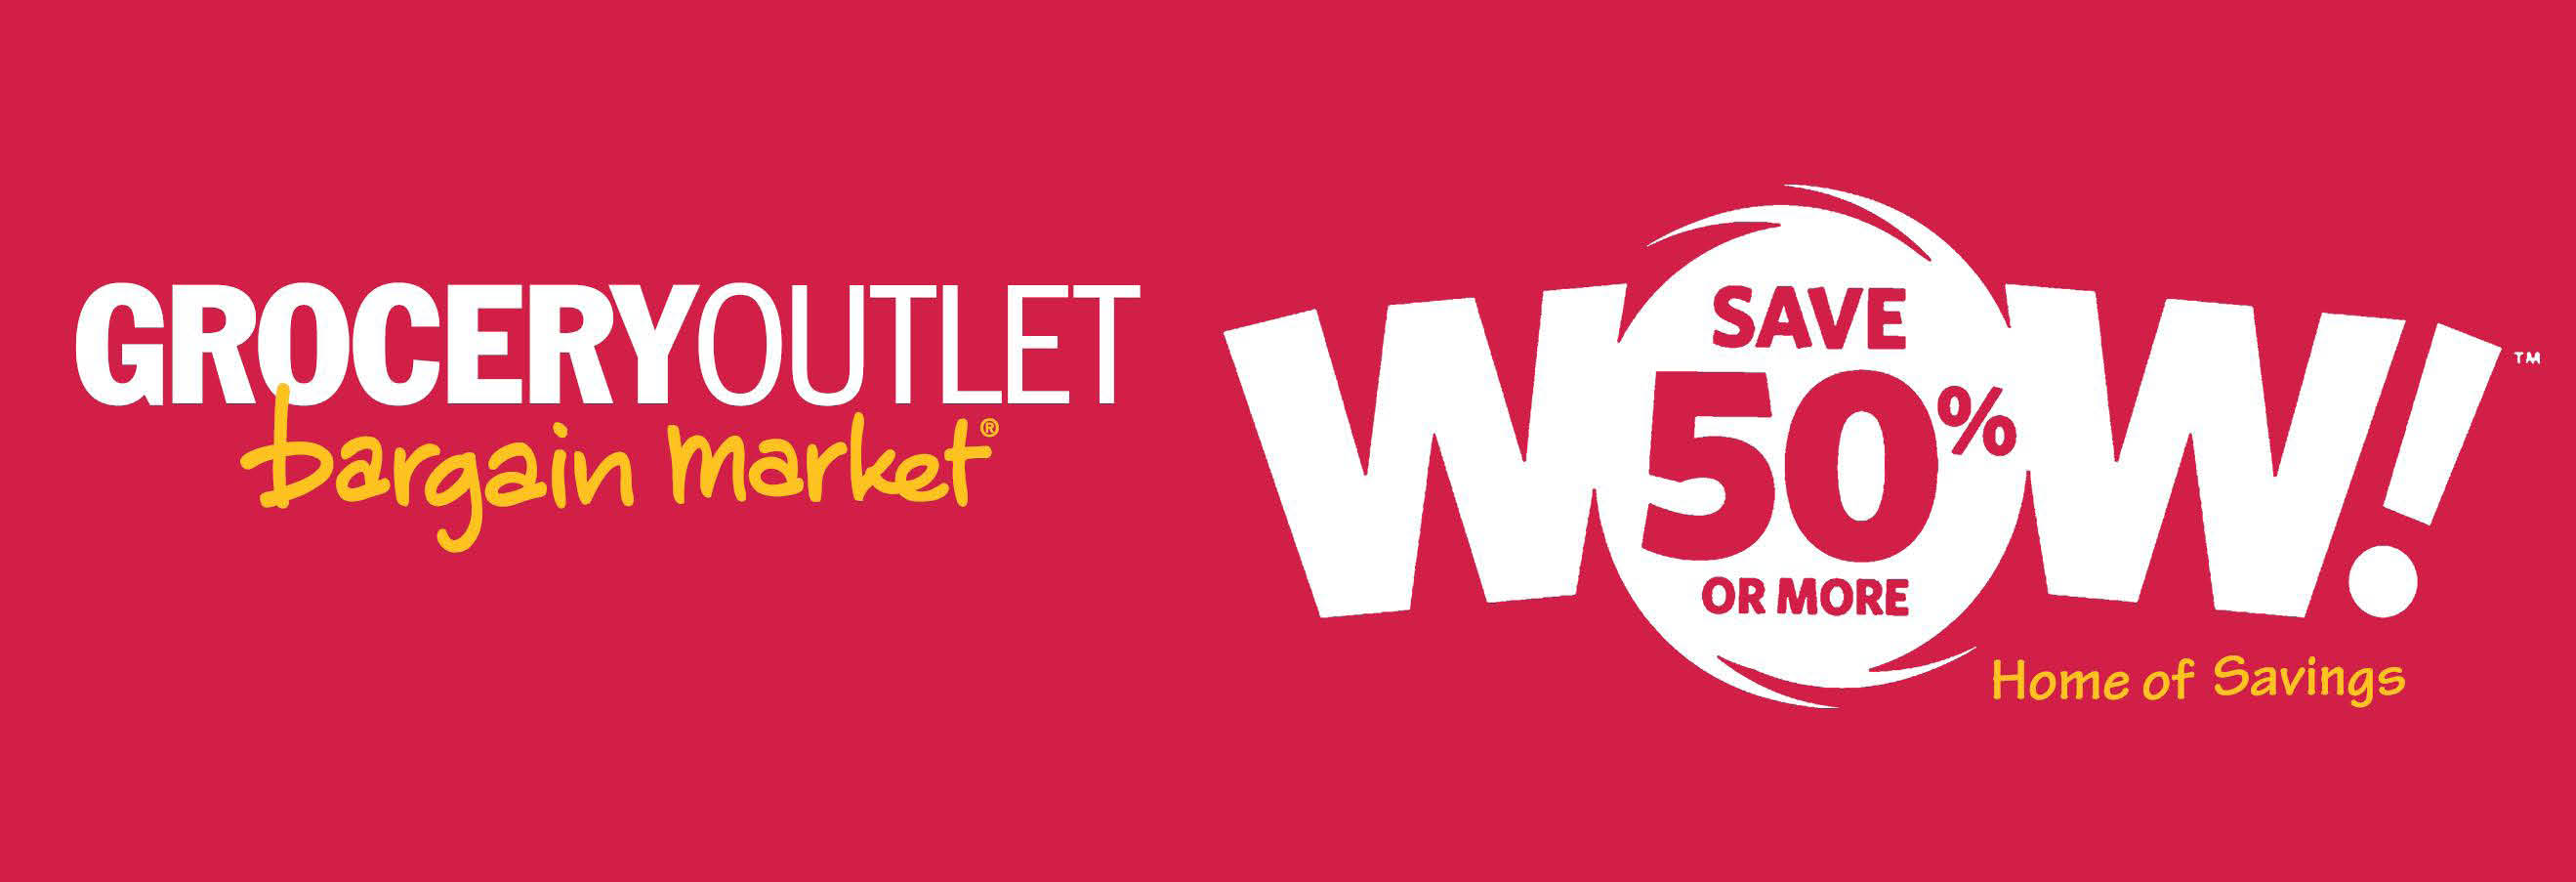 Bargain outlet coupons